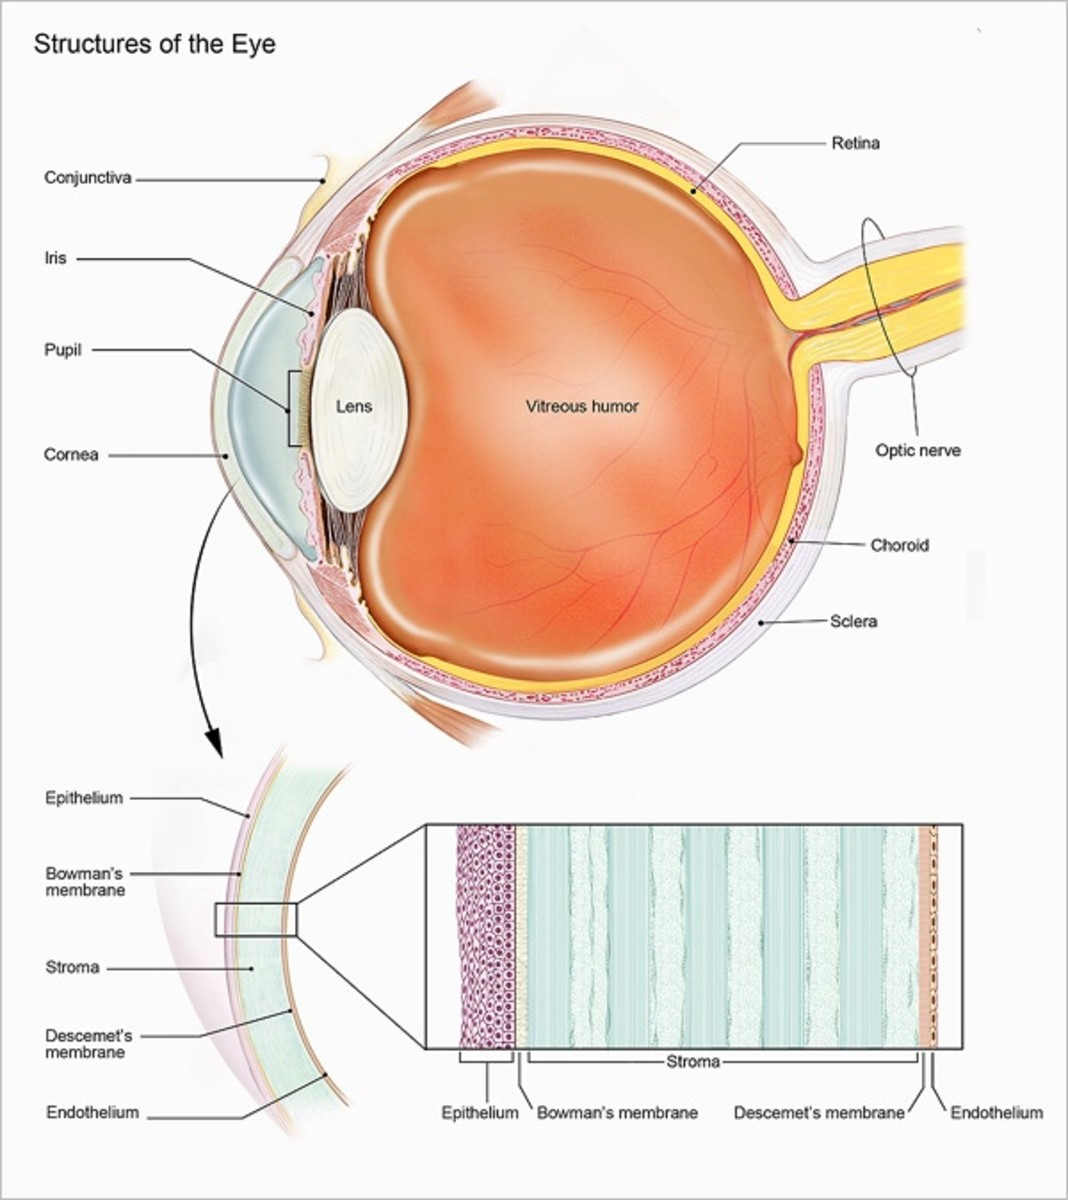 Structure of the eye and the cornea